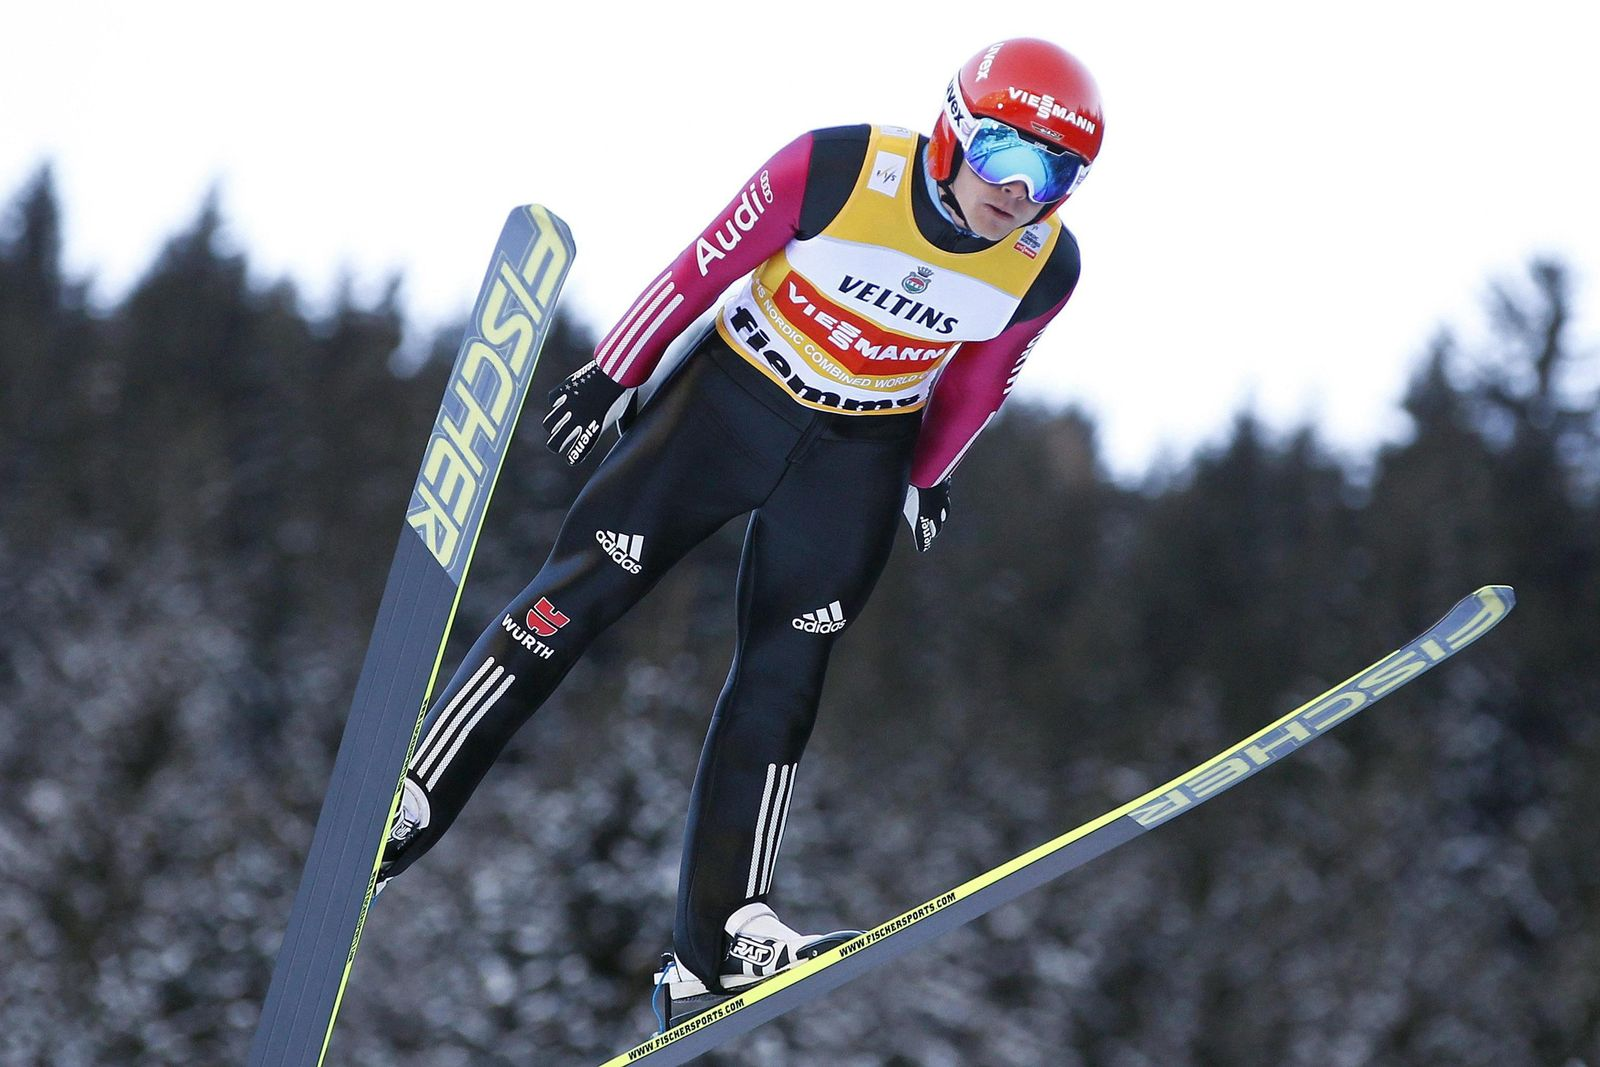 Nordic Combined World Cup in Val di Fiemme